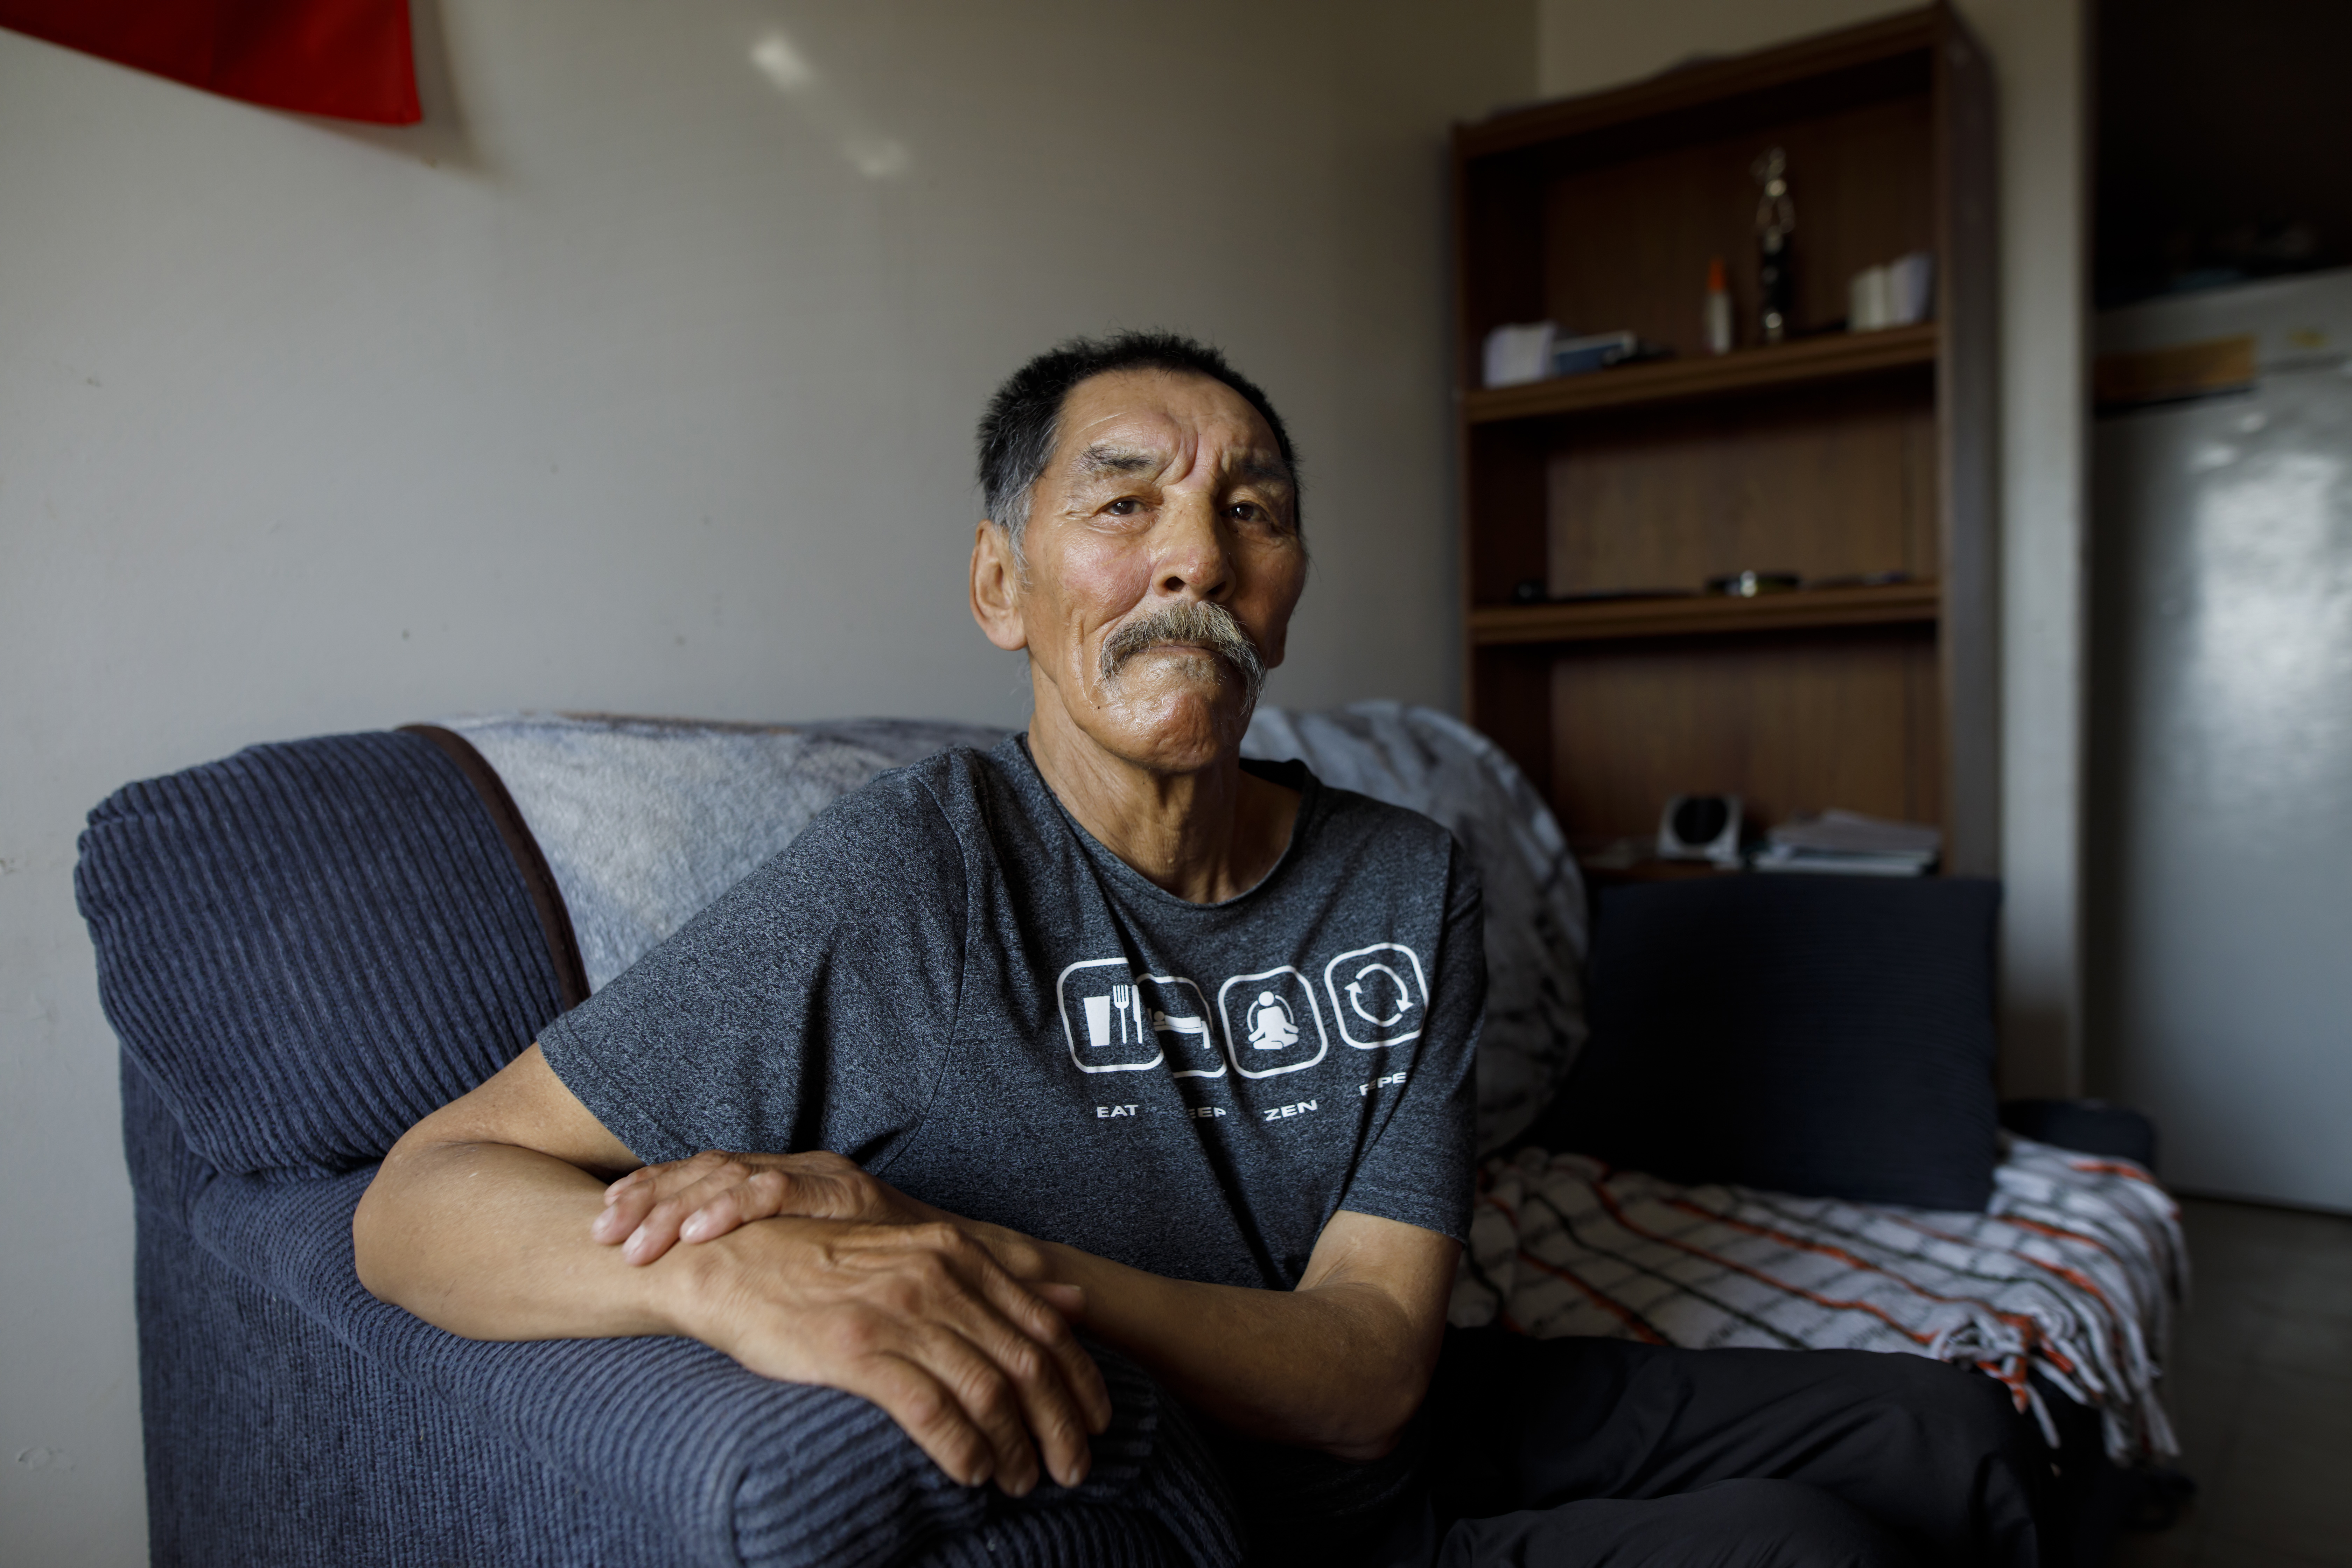 Elder James Kalluk sits for a photograph at his home in Baker Lake, Nunavut, on July 29, 2019. MUST CREDIT: Bloomberg photo by Cole Burston.